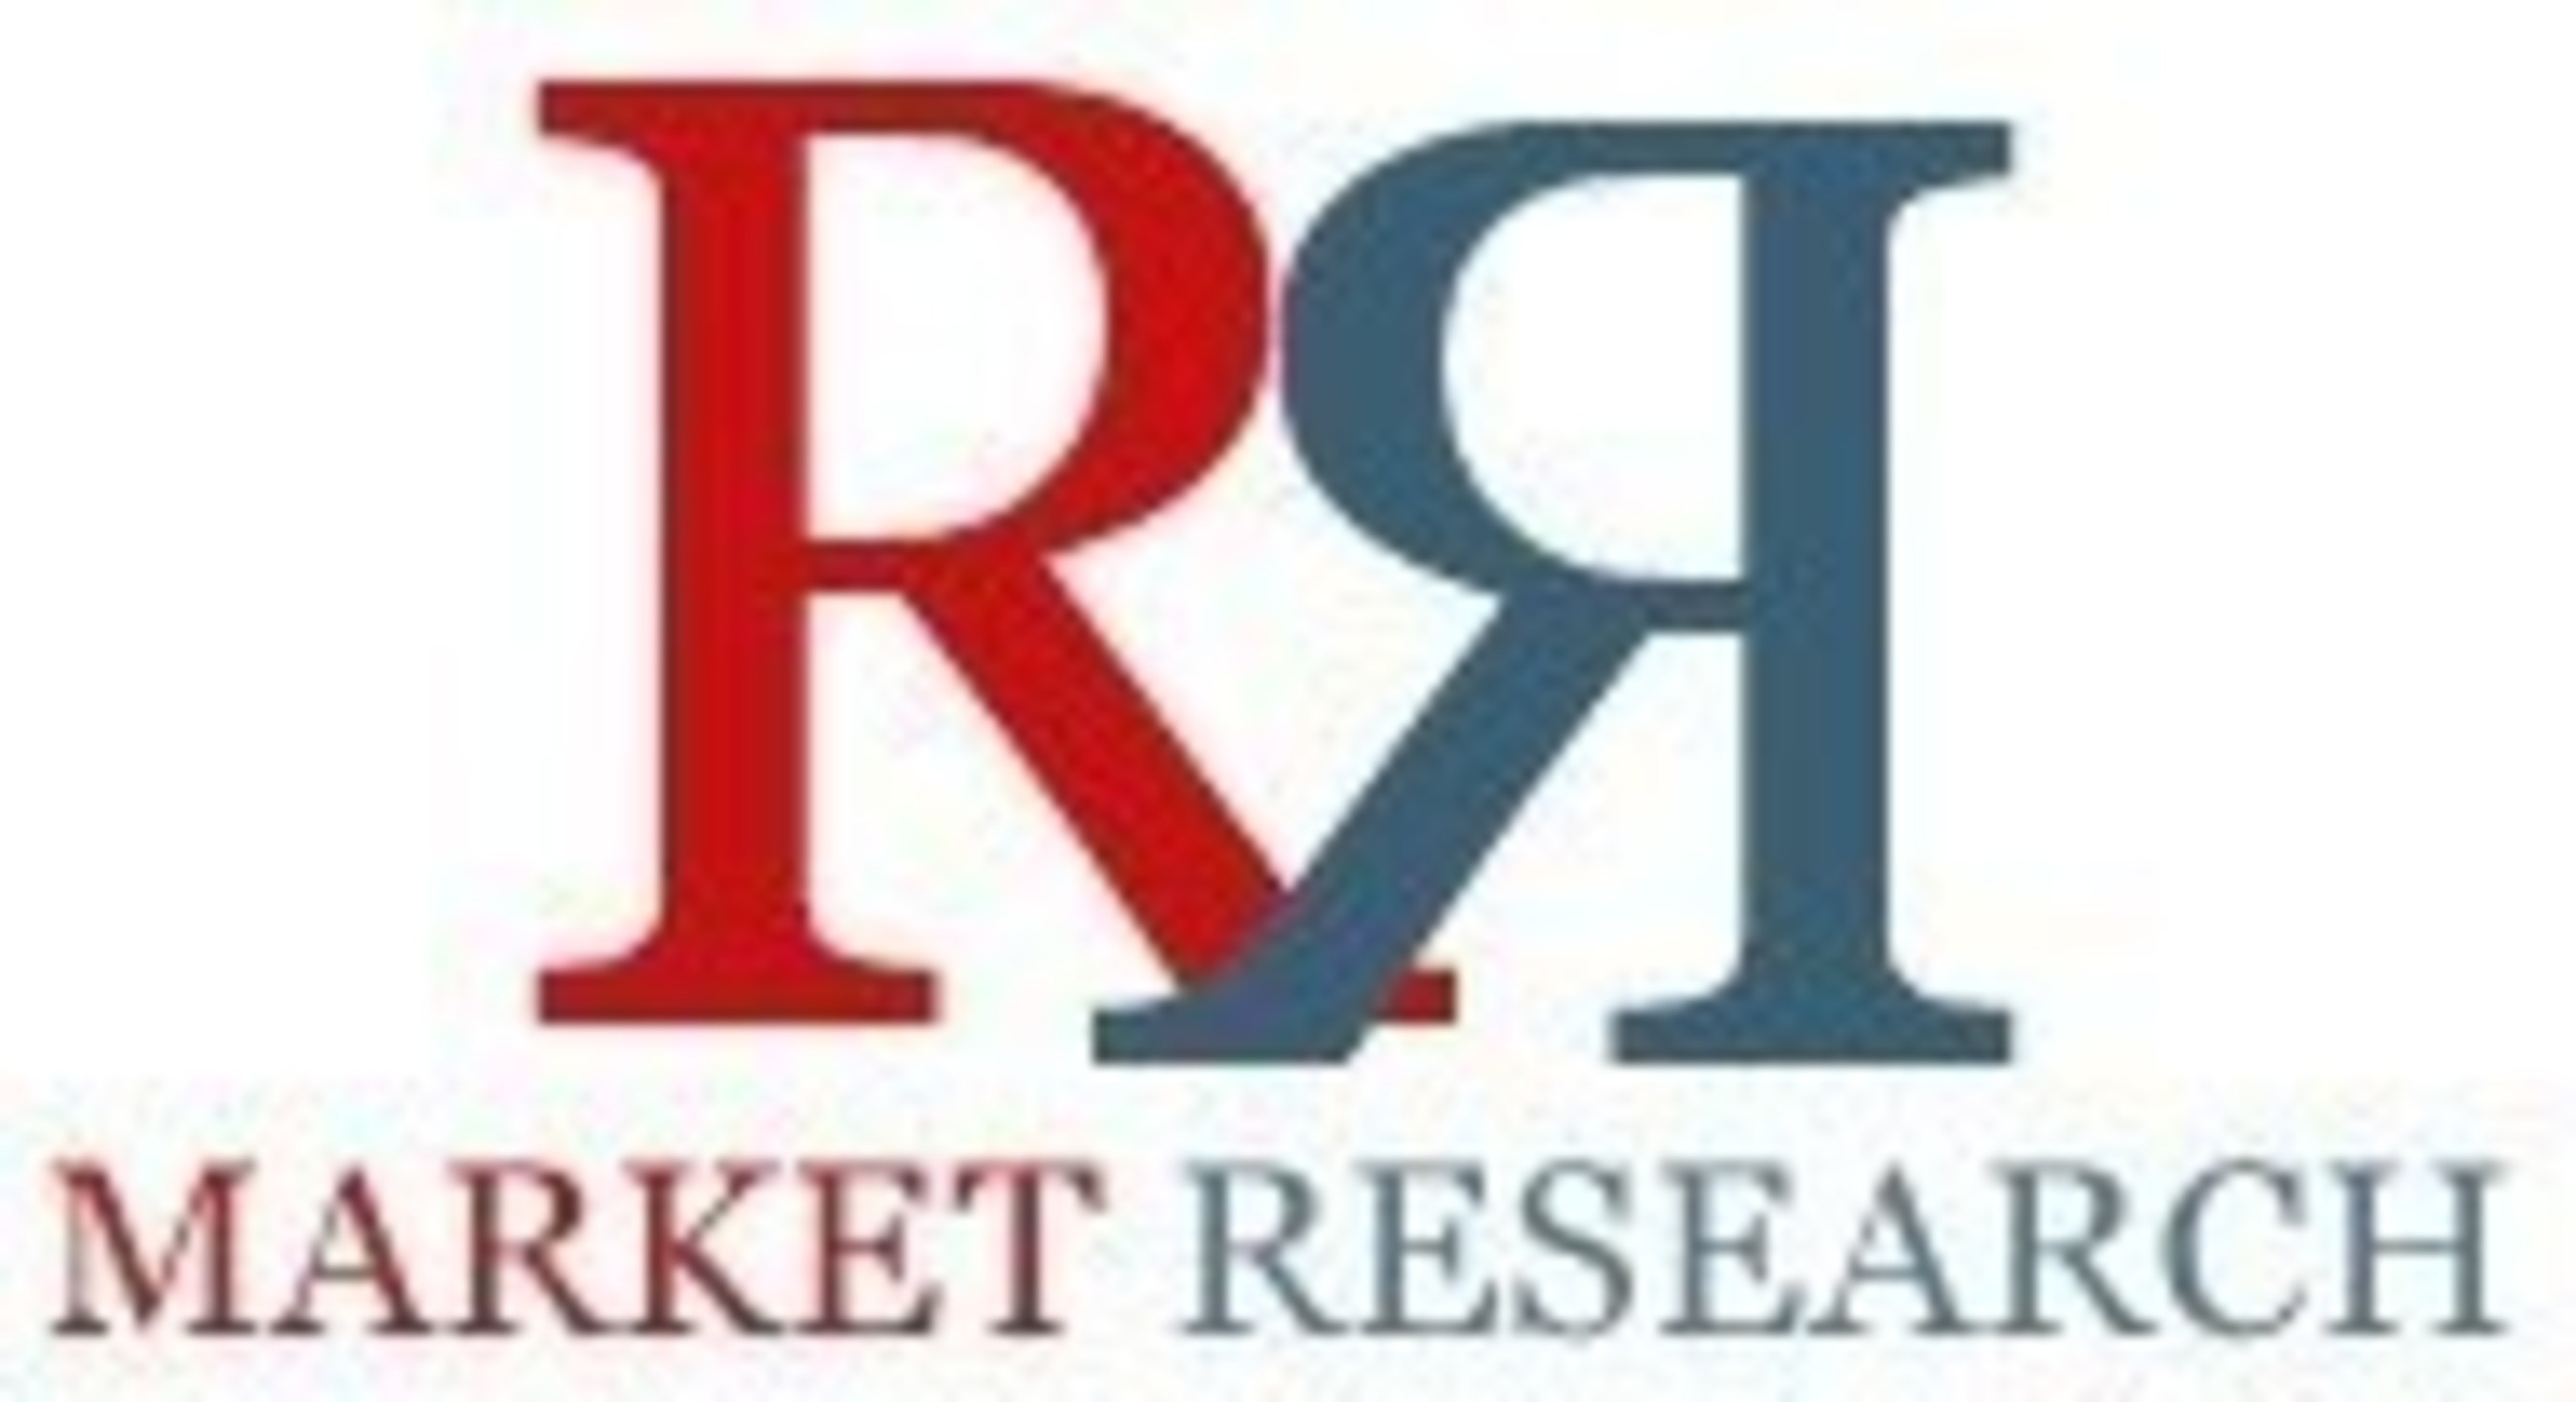 Induction Heater Industry 2020 Forecasts For Global and Chinese Regions in New Research Report at RnRMarketResearch.com